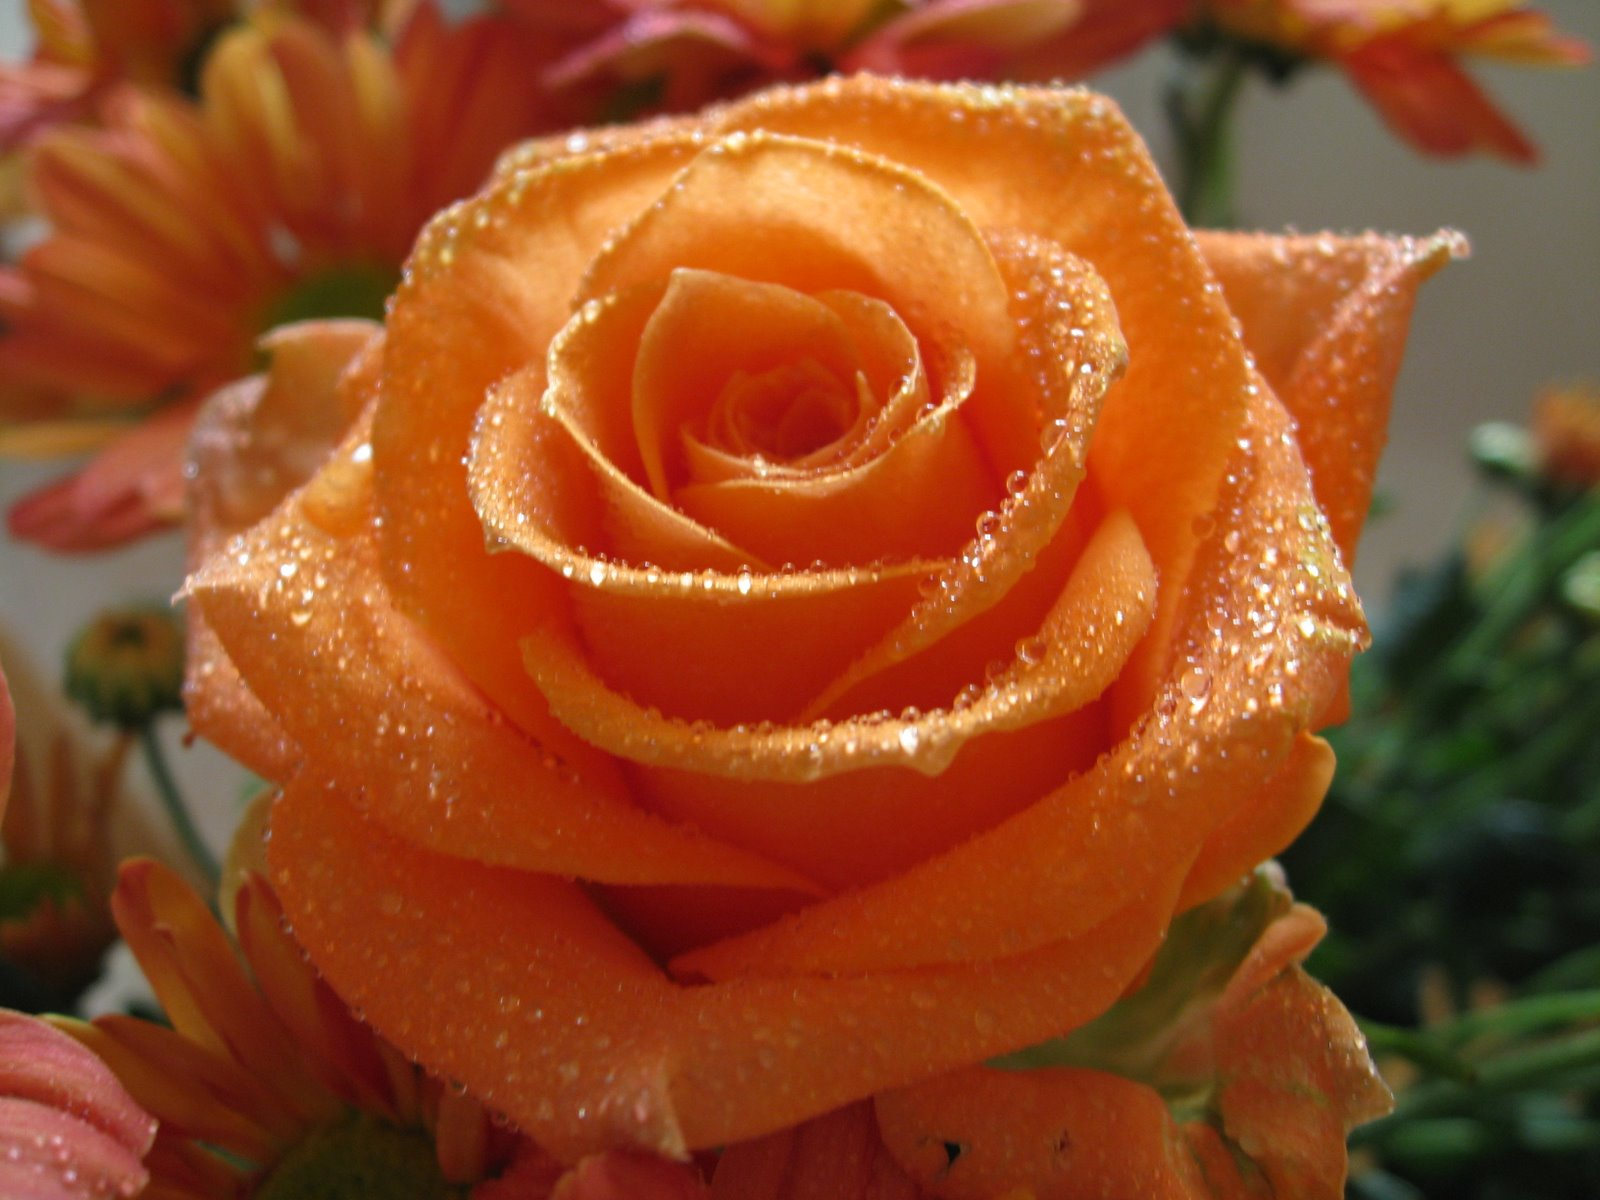 rose wallpaper hdtv 1920x1080 Orange Rose 02 ...